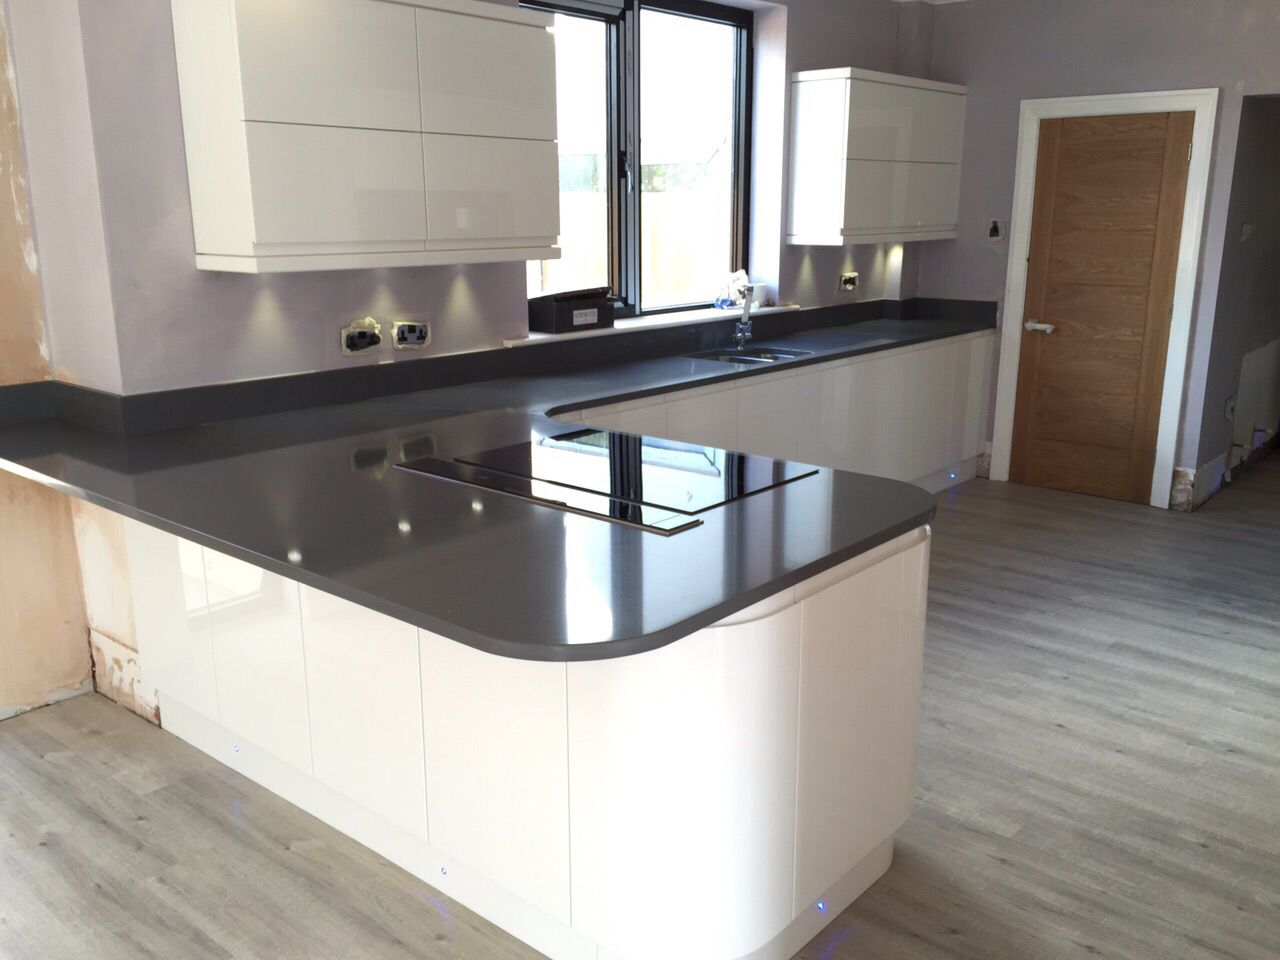 Best Ultra Modern Gloss White Handless Kitchen With Quartz Grey 400 x 300